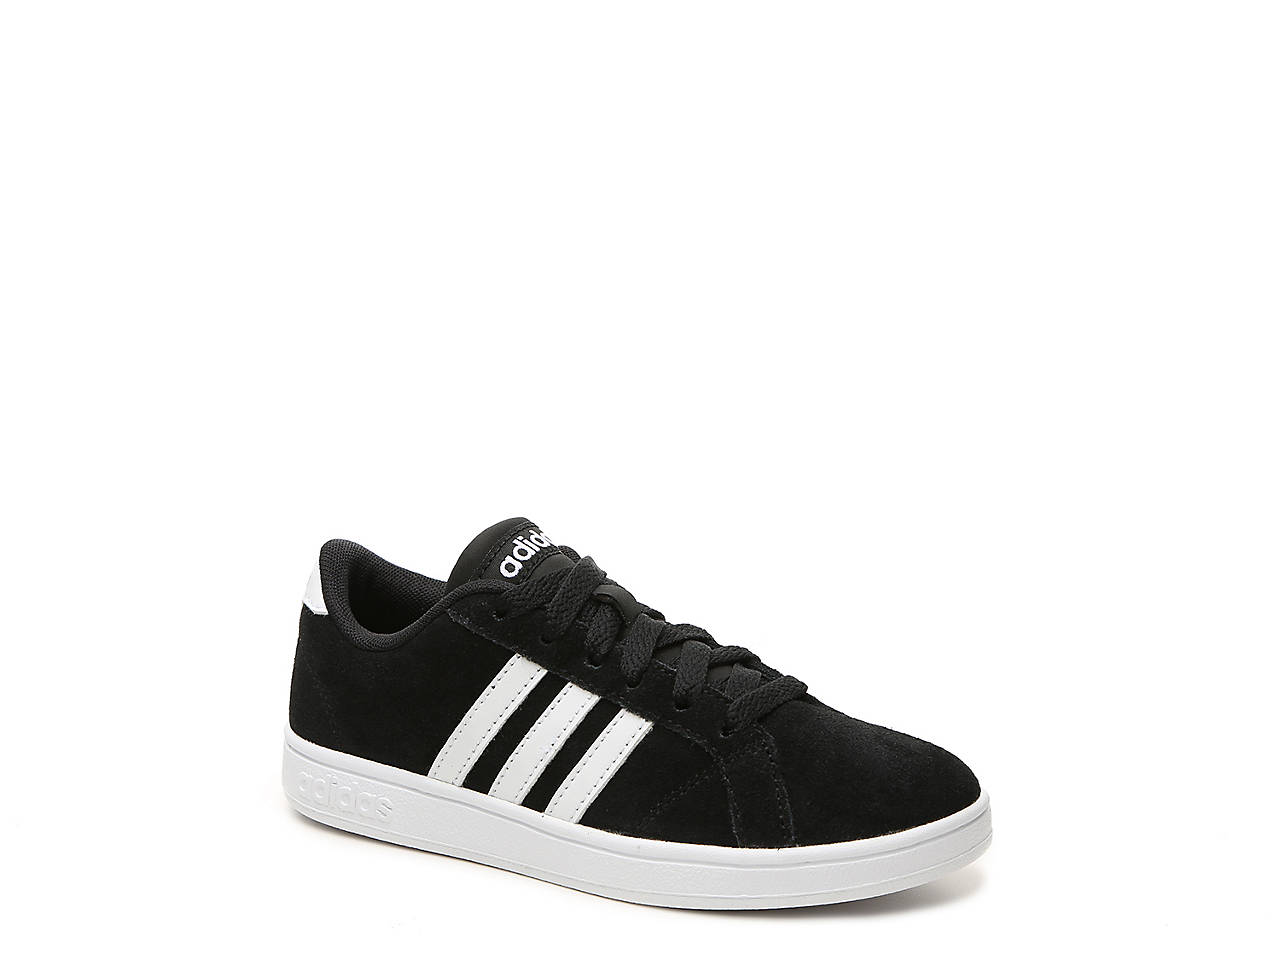 3c7e37cccc29 adidas Baseline Toddler   Youth Sneaker Kids Shoes